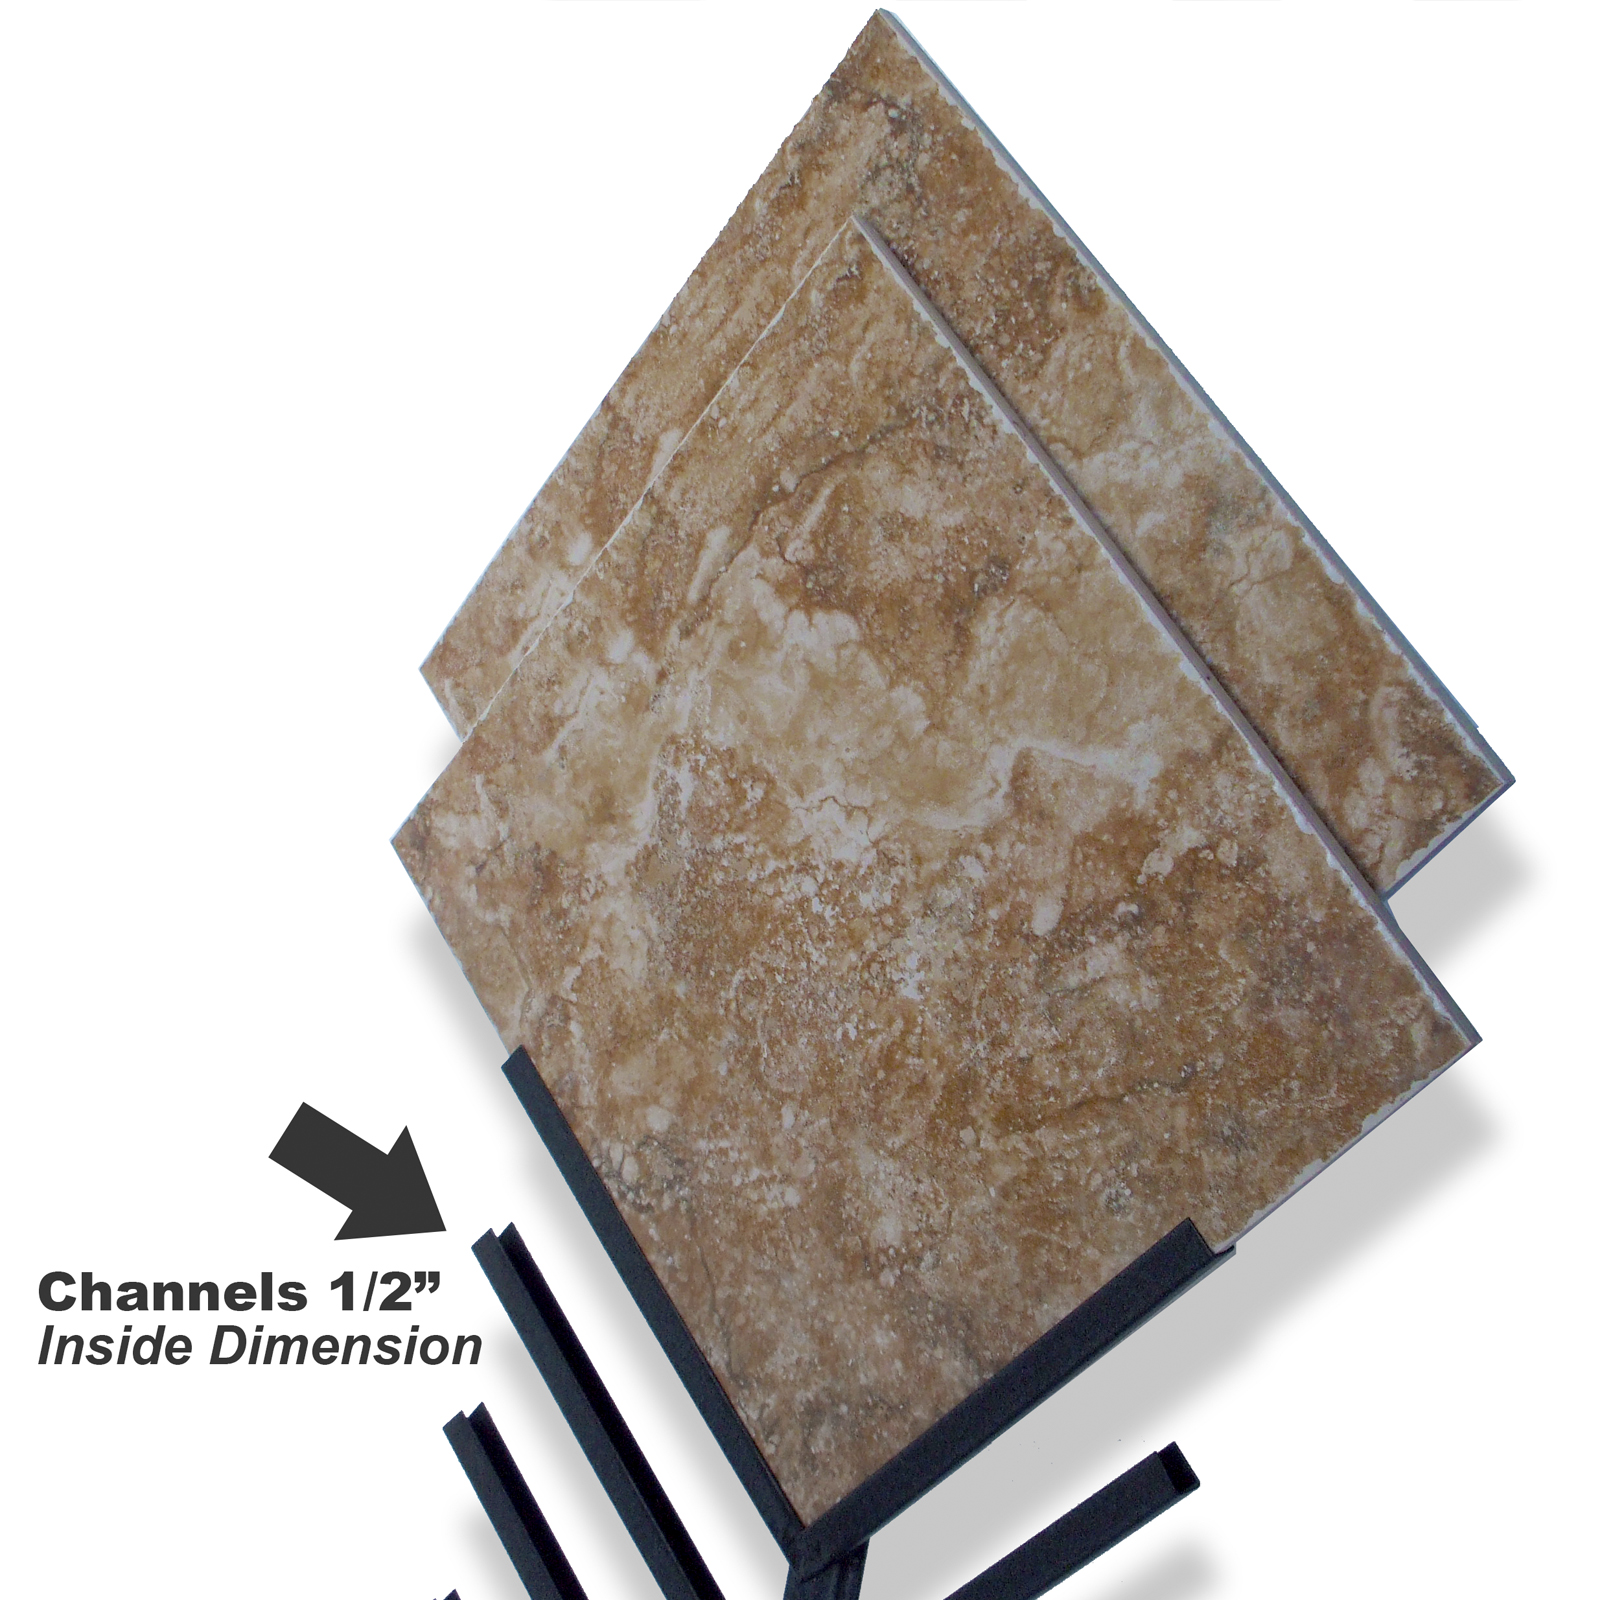 McReady Sample Channel System Displays Diagonal Samples